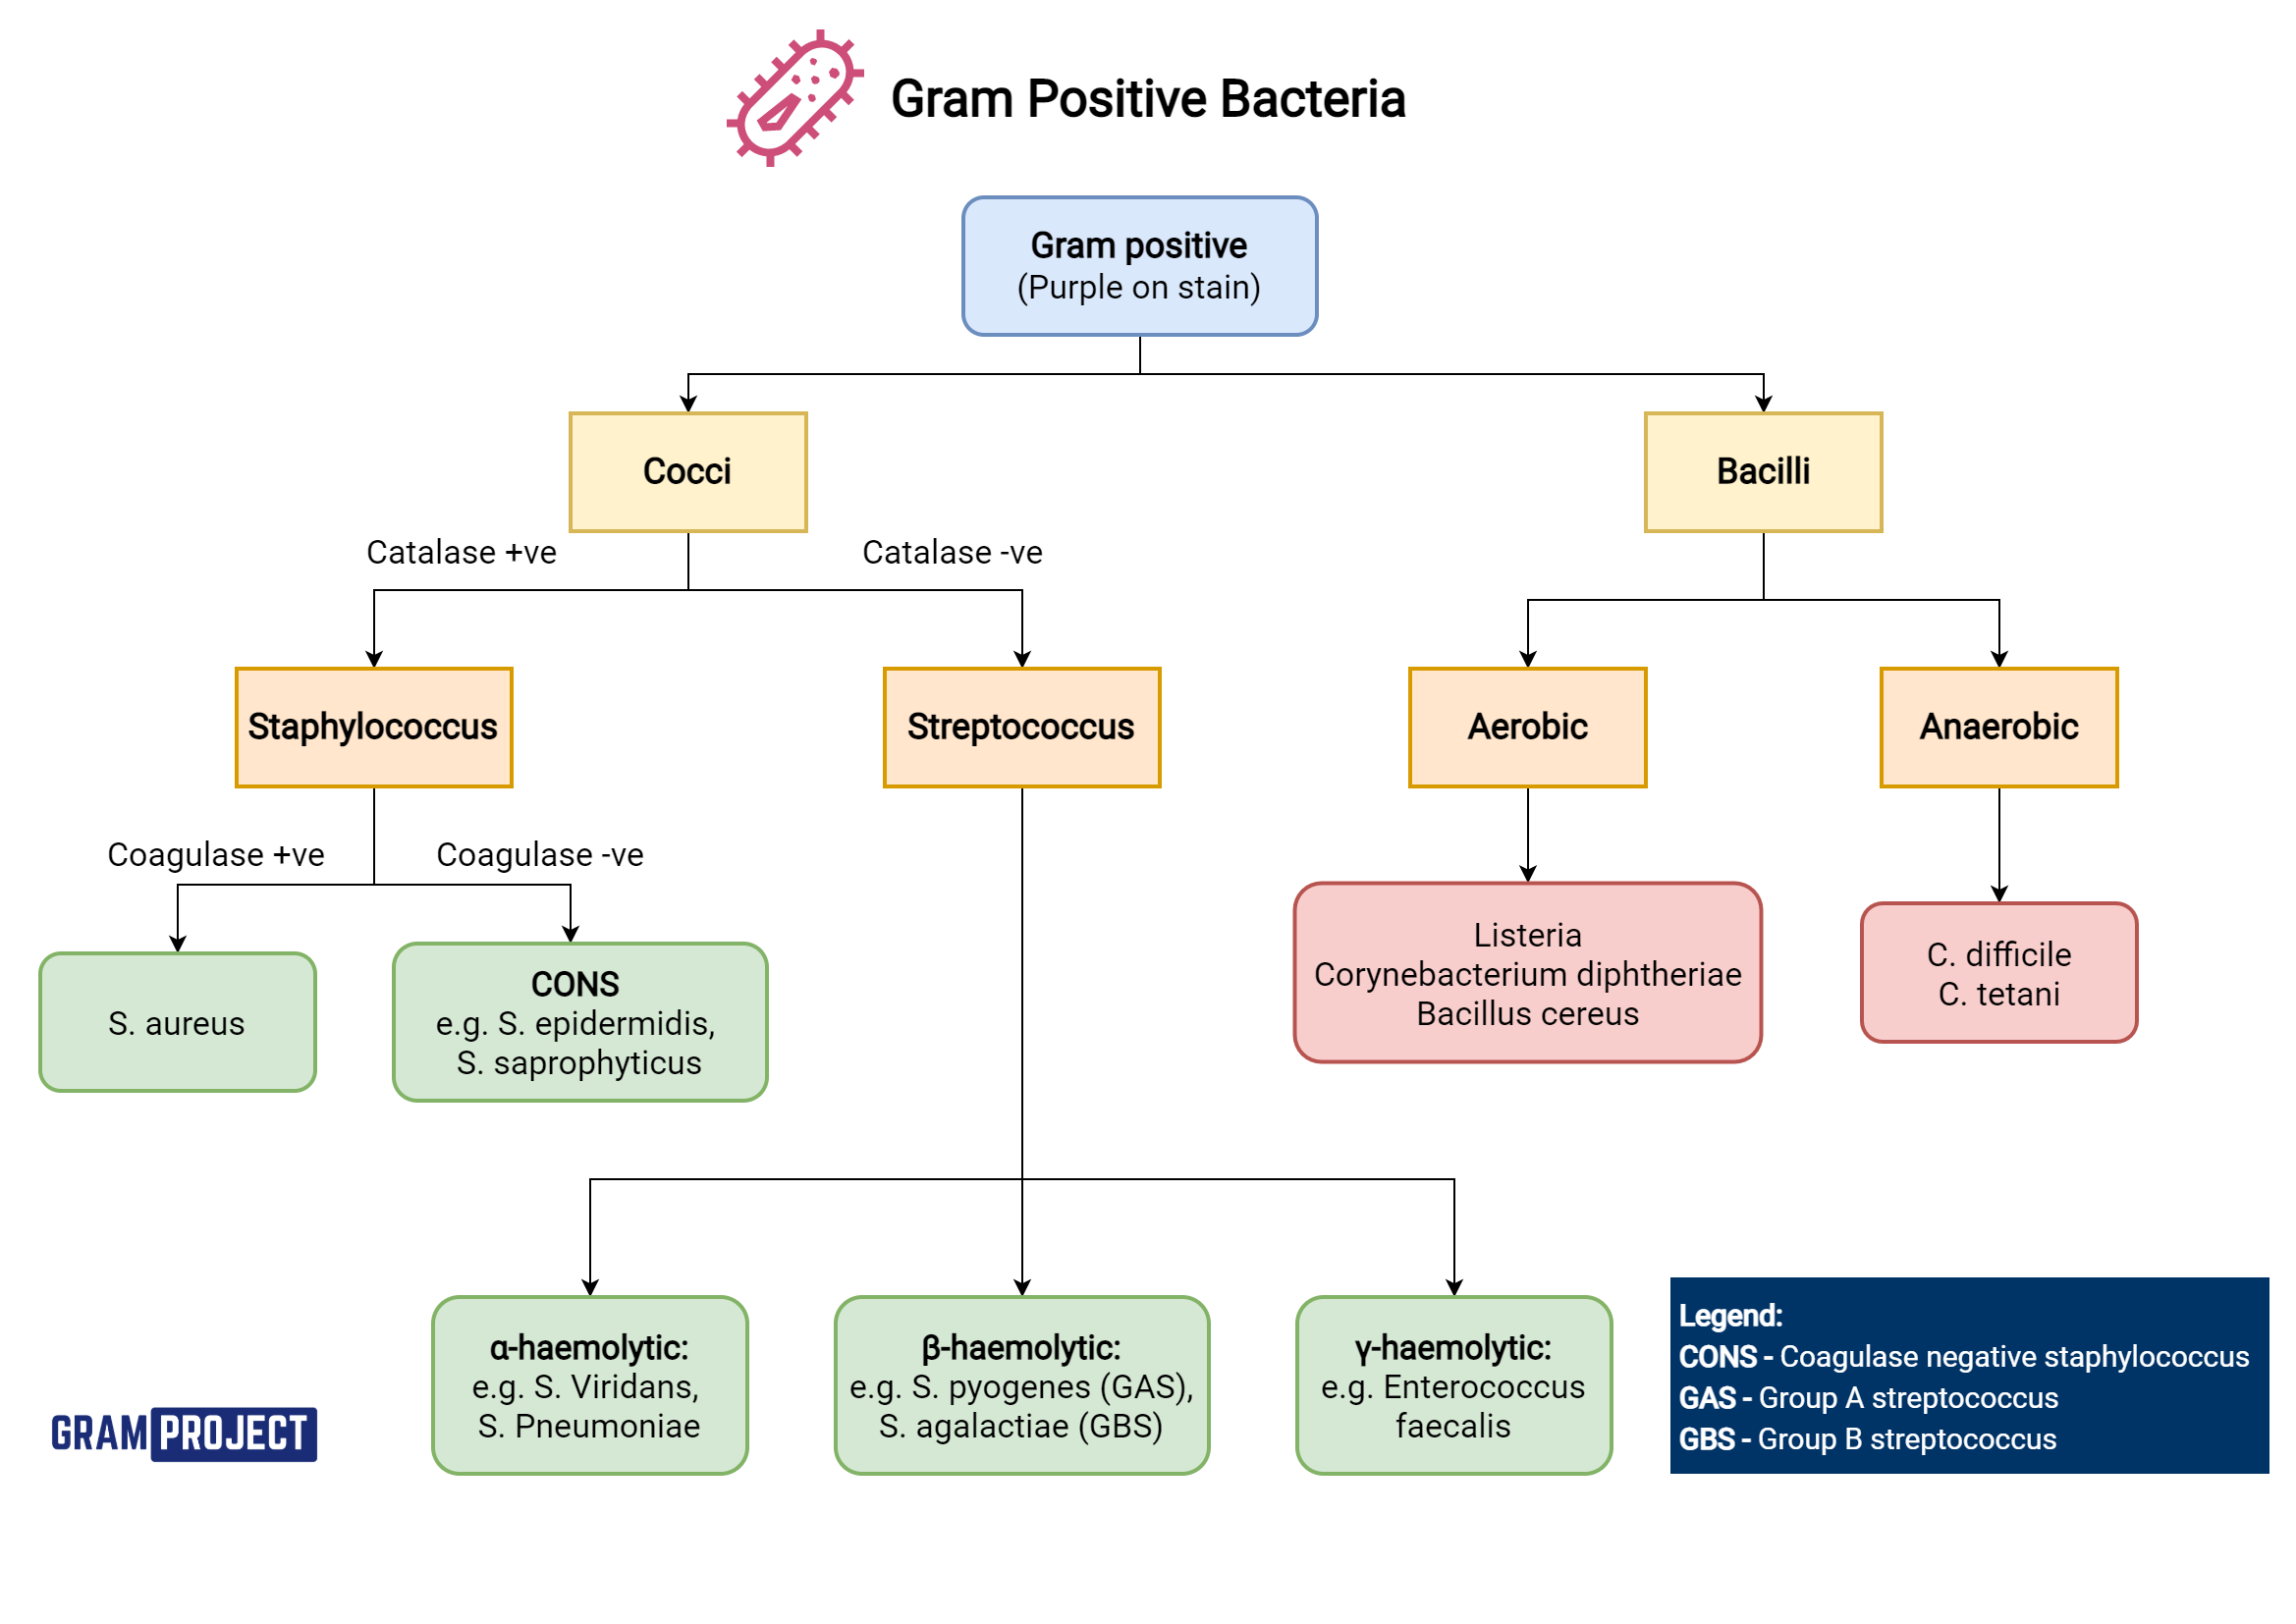 Gram positive bacteria types and classification